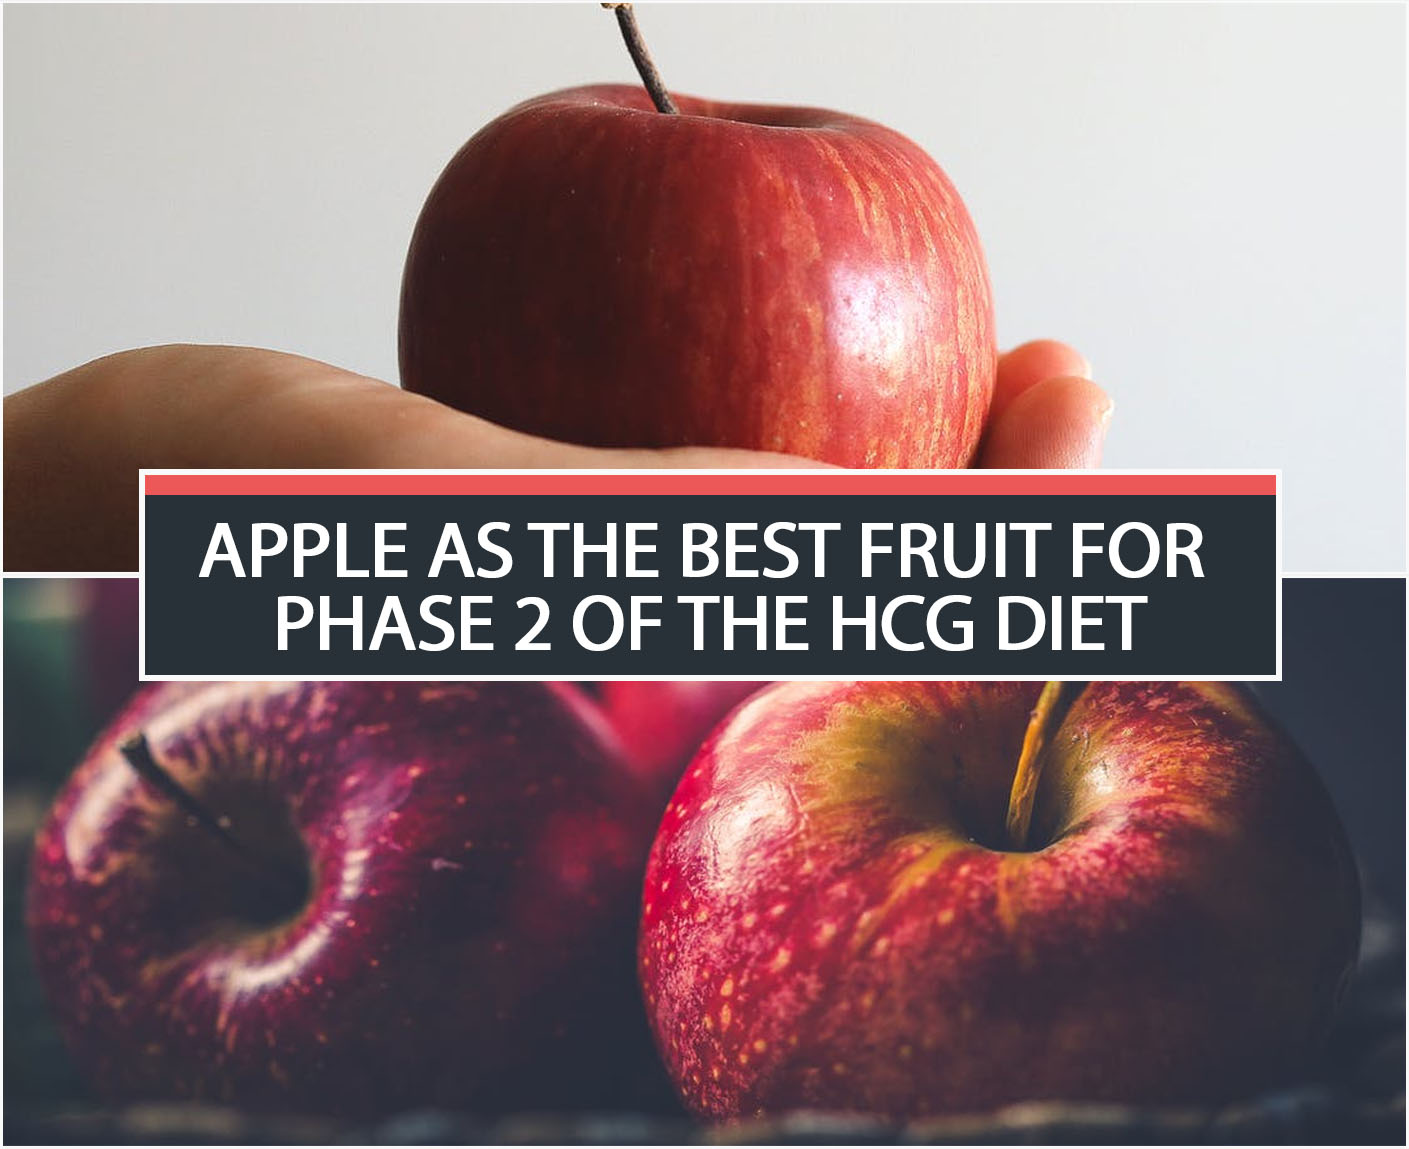 APPLE AS THE BEST FRUIT FOR PHASE 2 OF THE HCG DIET